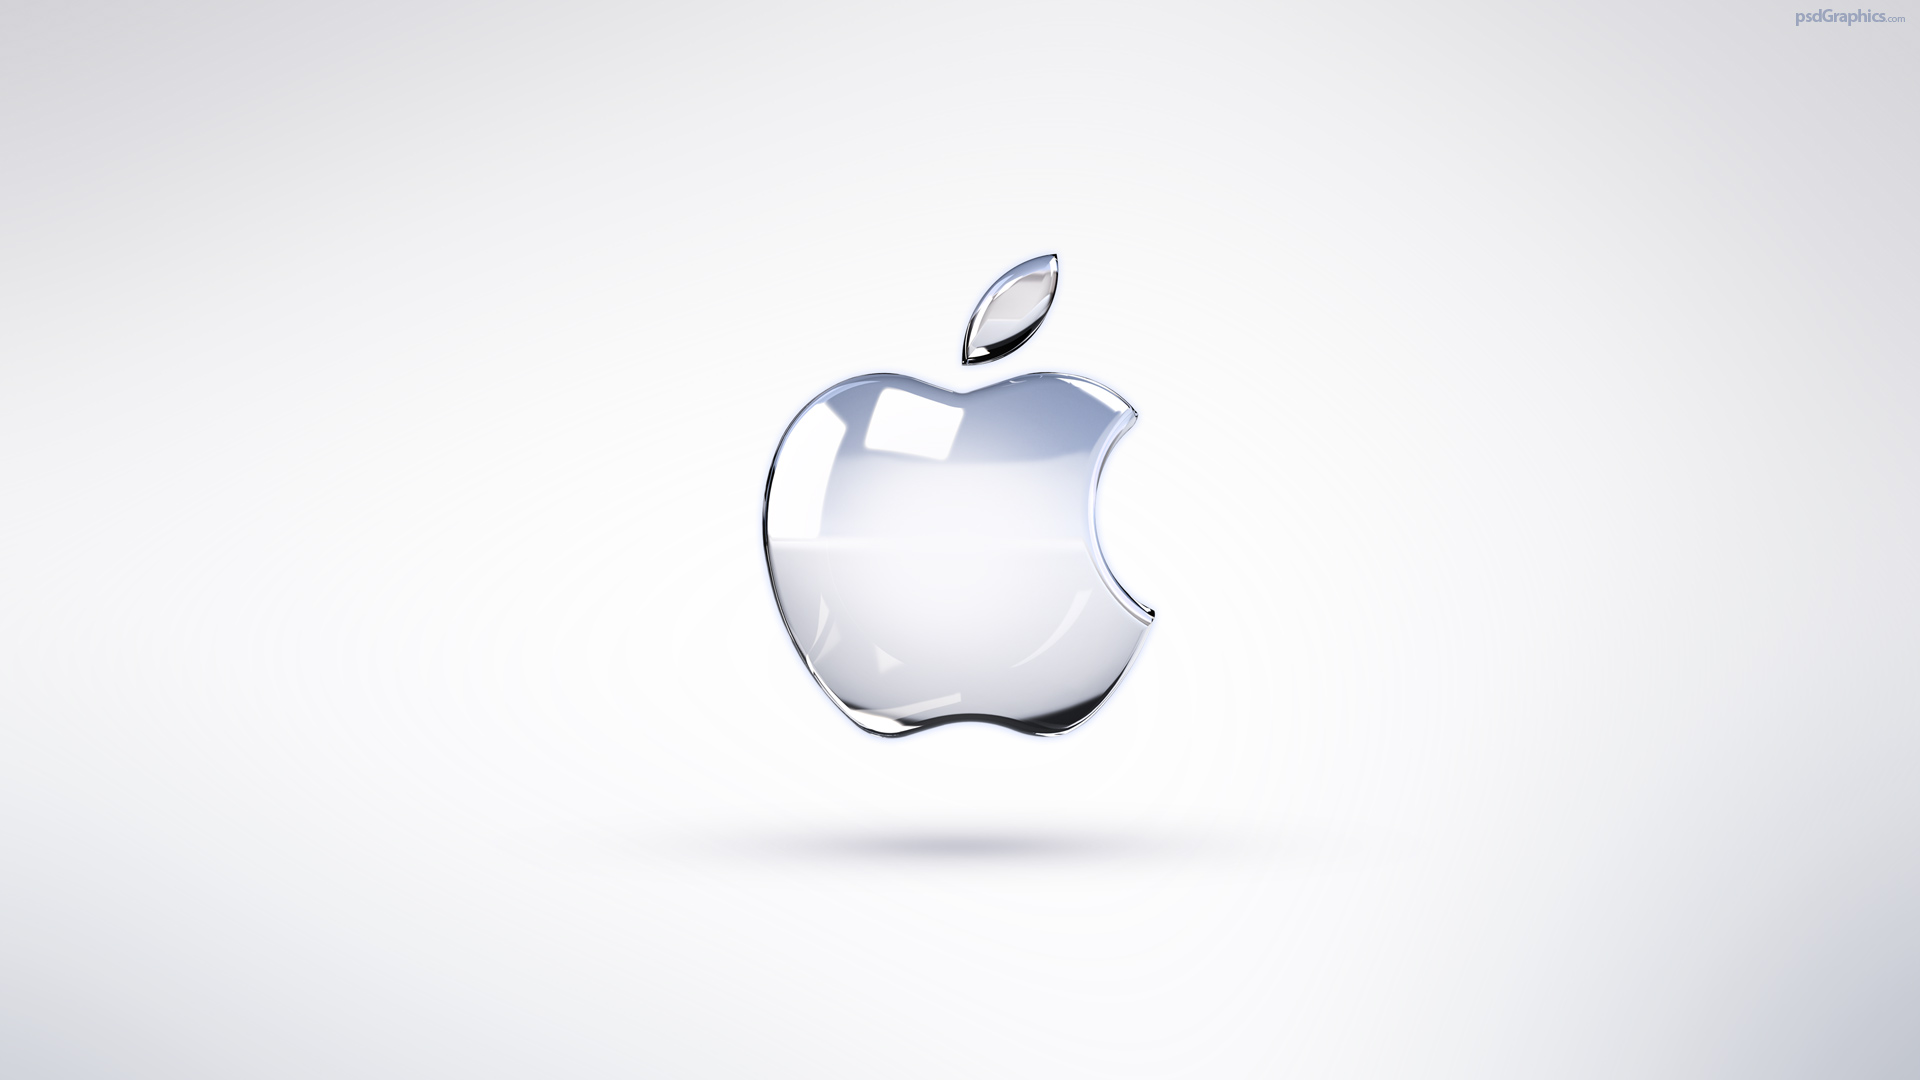 Apple Logo Hd Wallpaper Desktop Wallpapers Free Download Src